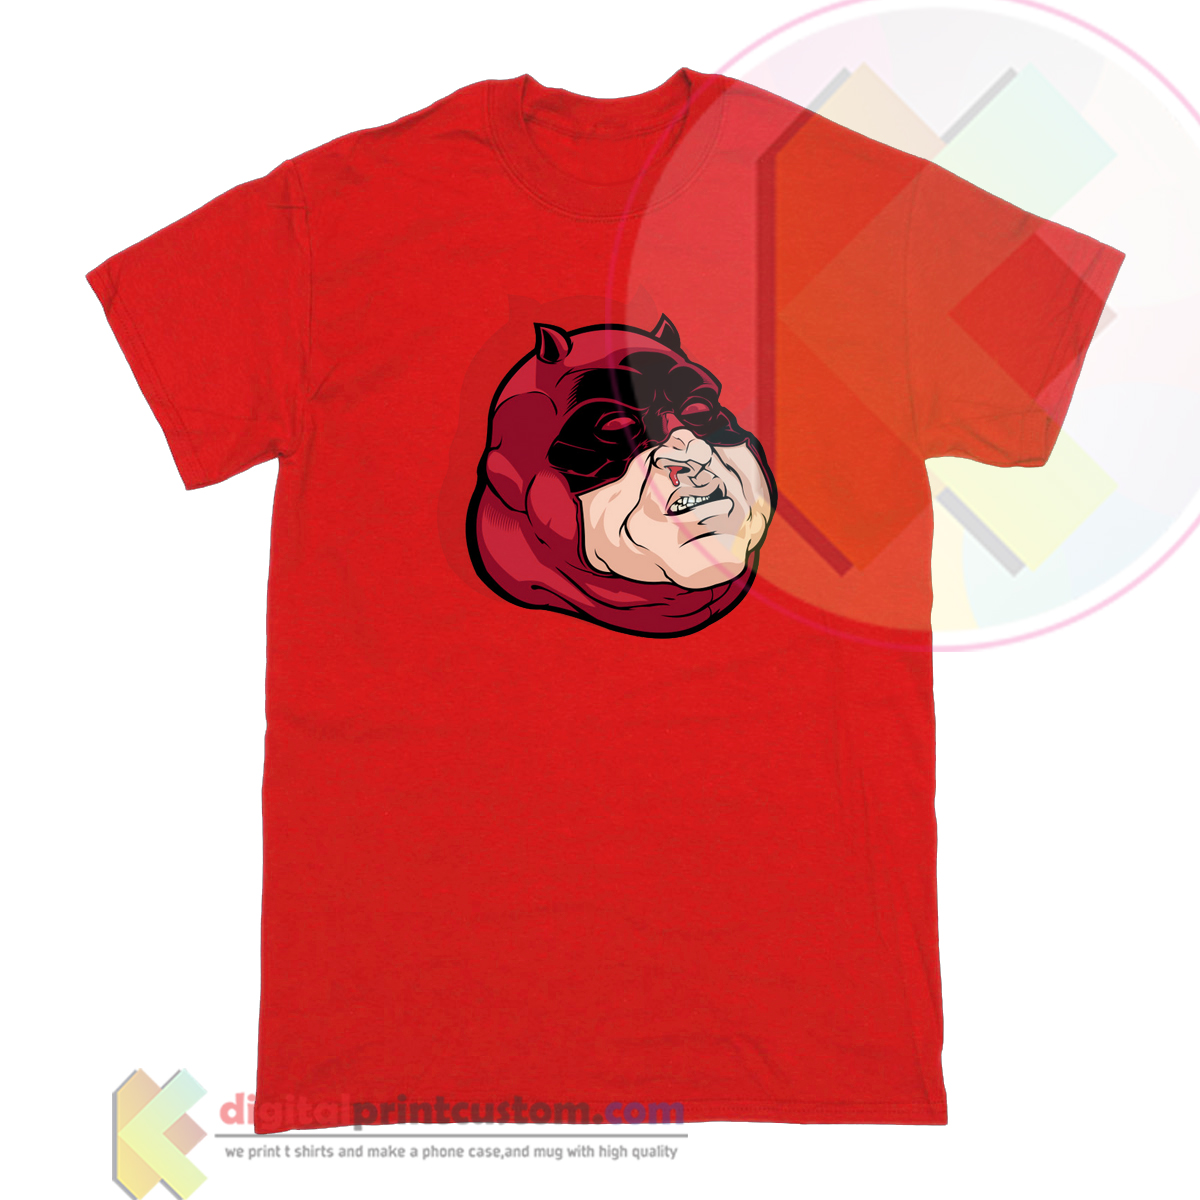 Darefat t shirt cool t shirt for gift by for Best online store usa